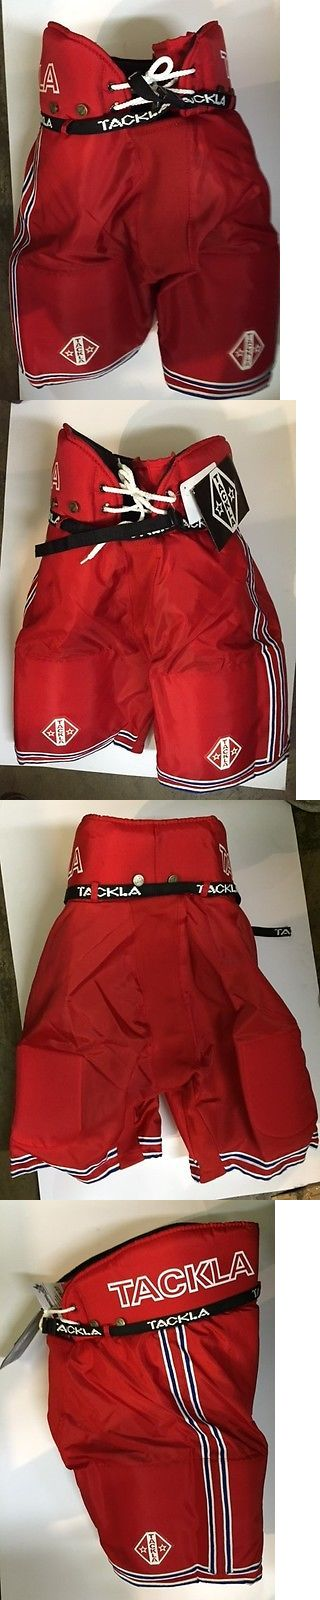 Pads and Guards 20856: Ny Rangers Tackla Sr Model 800 Hockey Pant, Most Sizes -> BUY IT NOW ONLY: $65 on eBay!